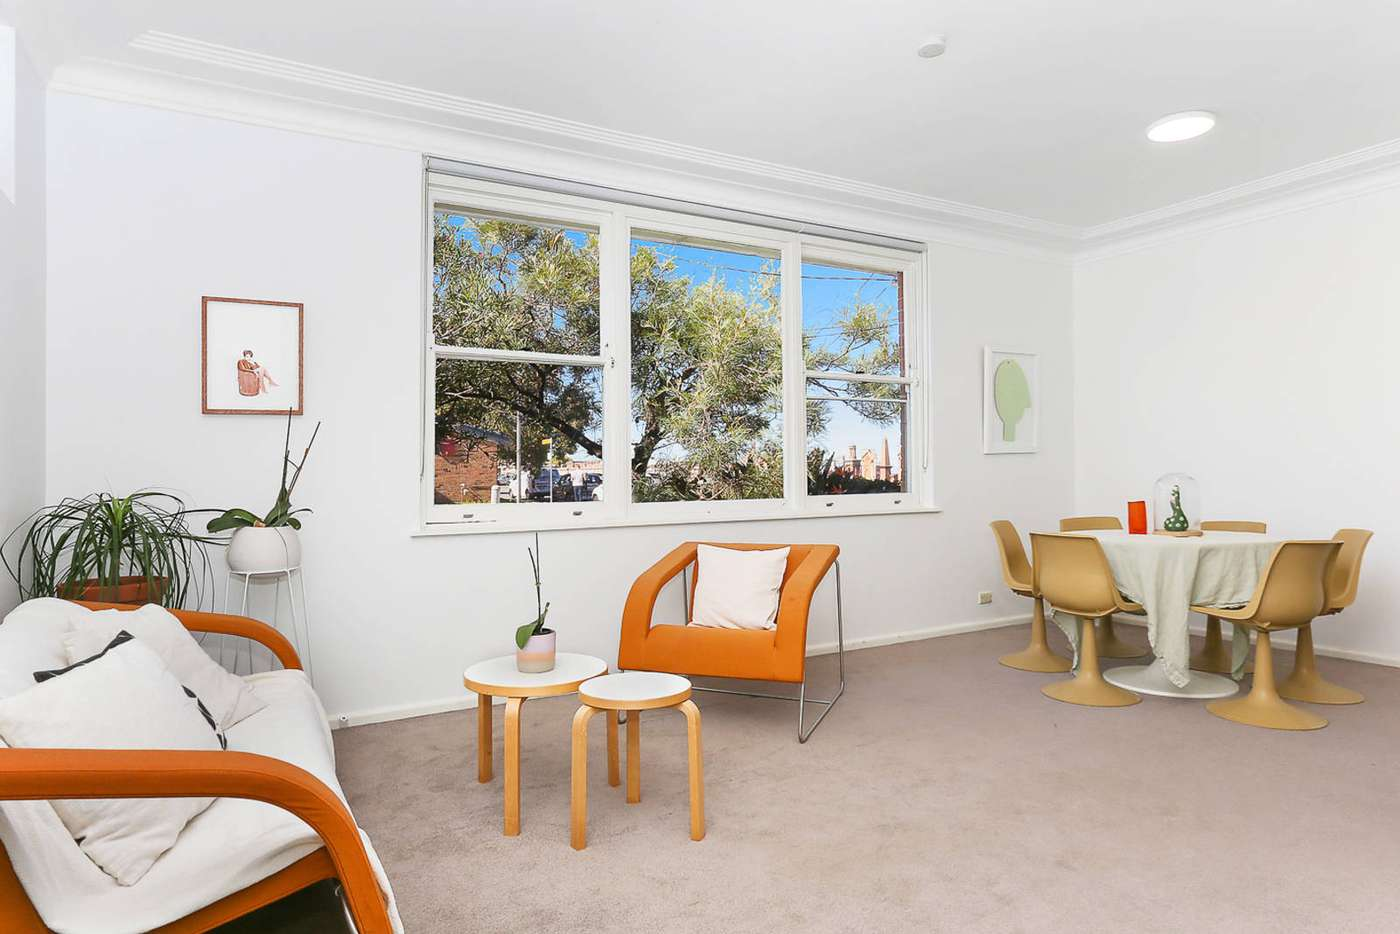 Fifth view of Homely house listing, 39 St Thomas Street, Bronte NSW 2024